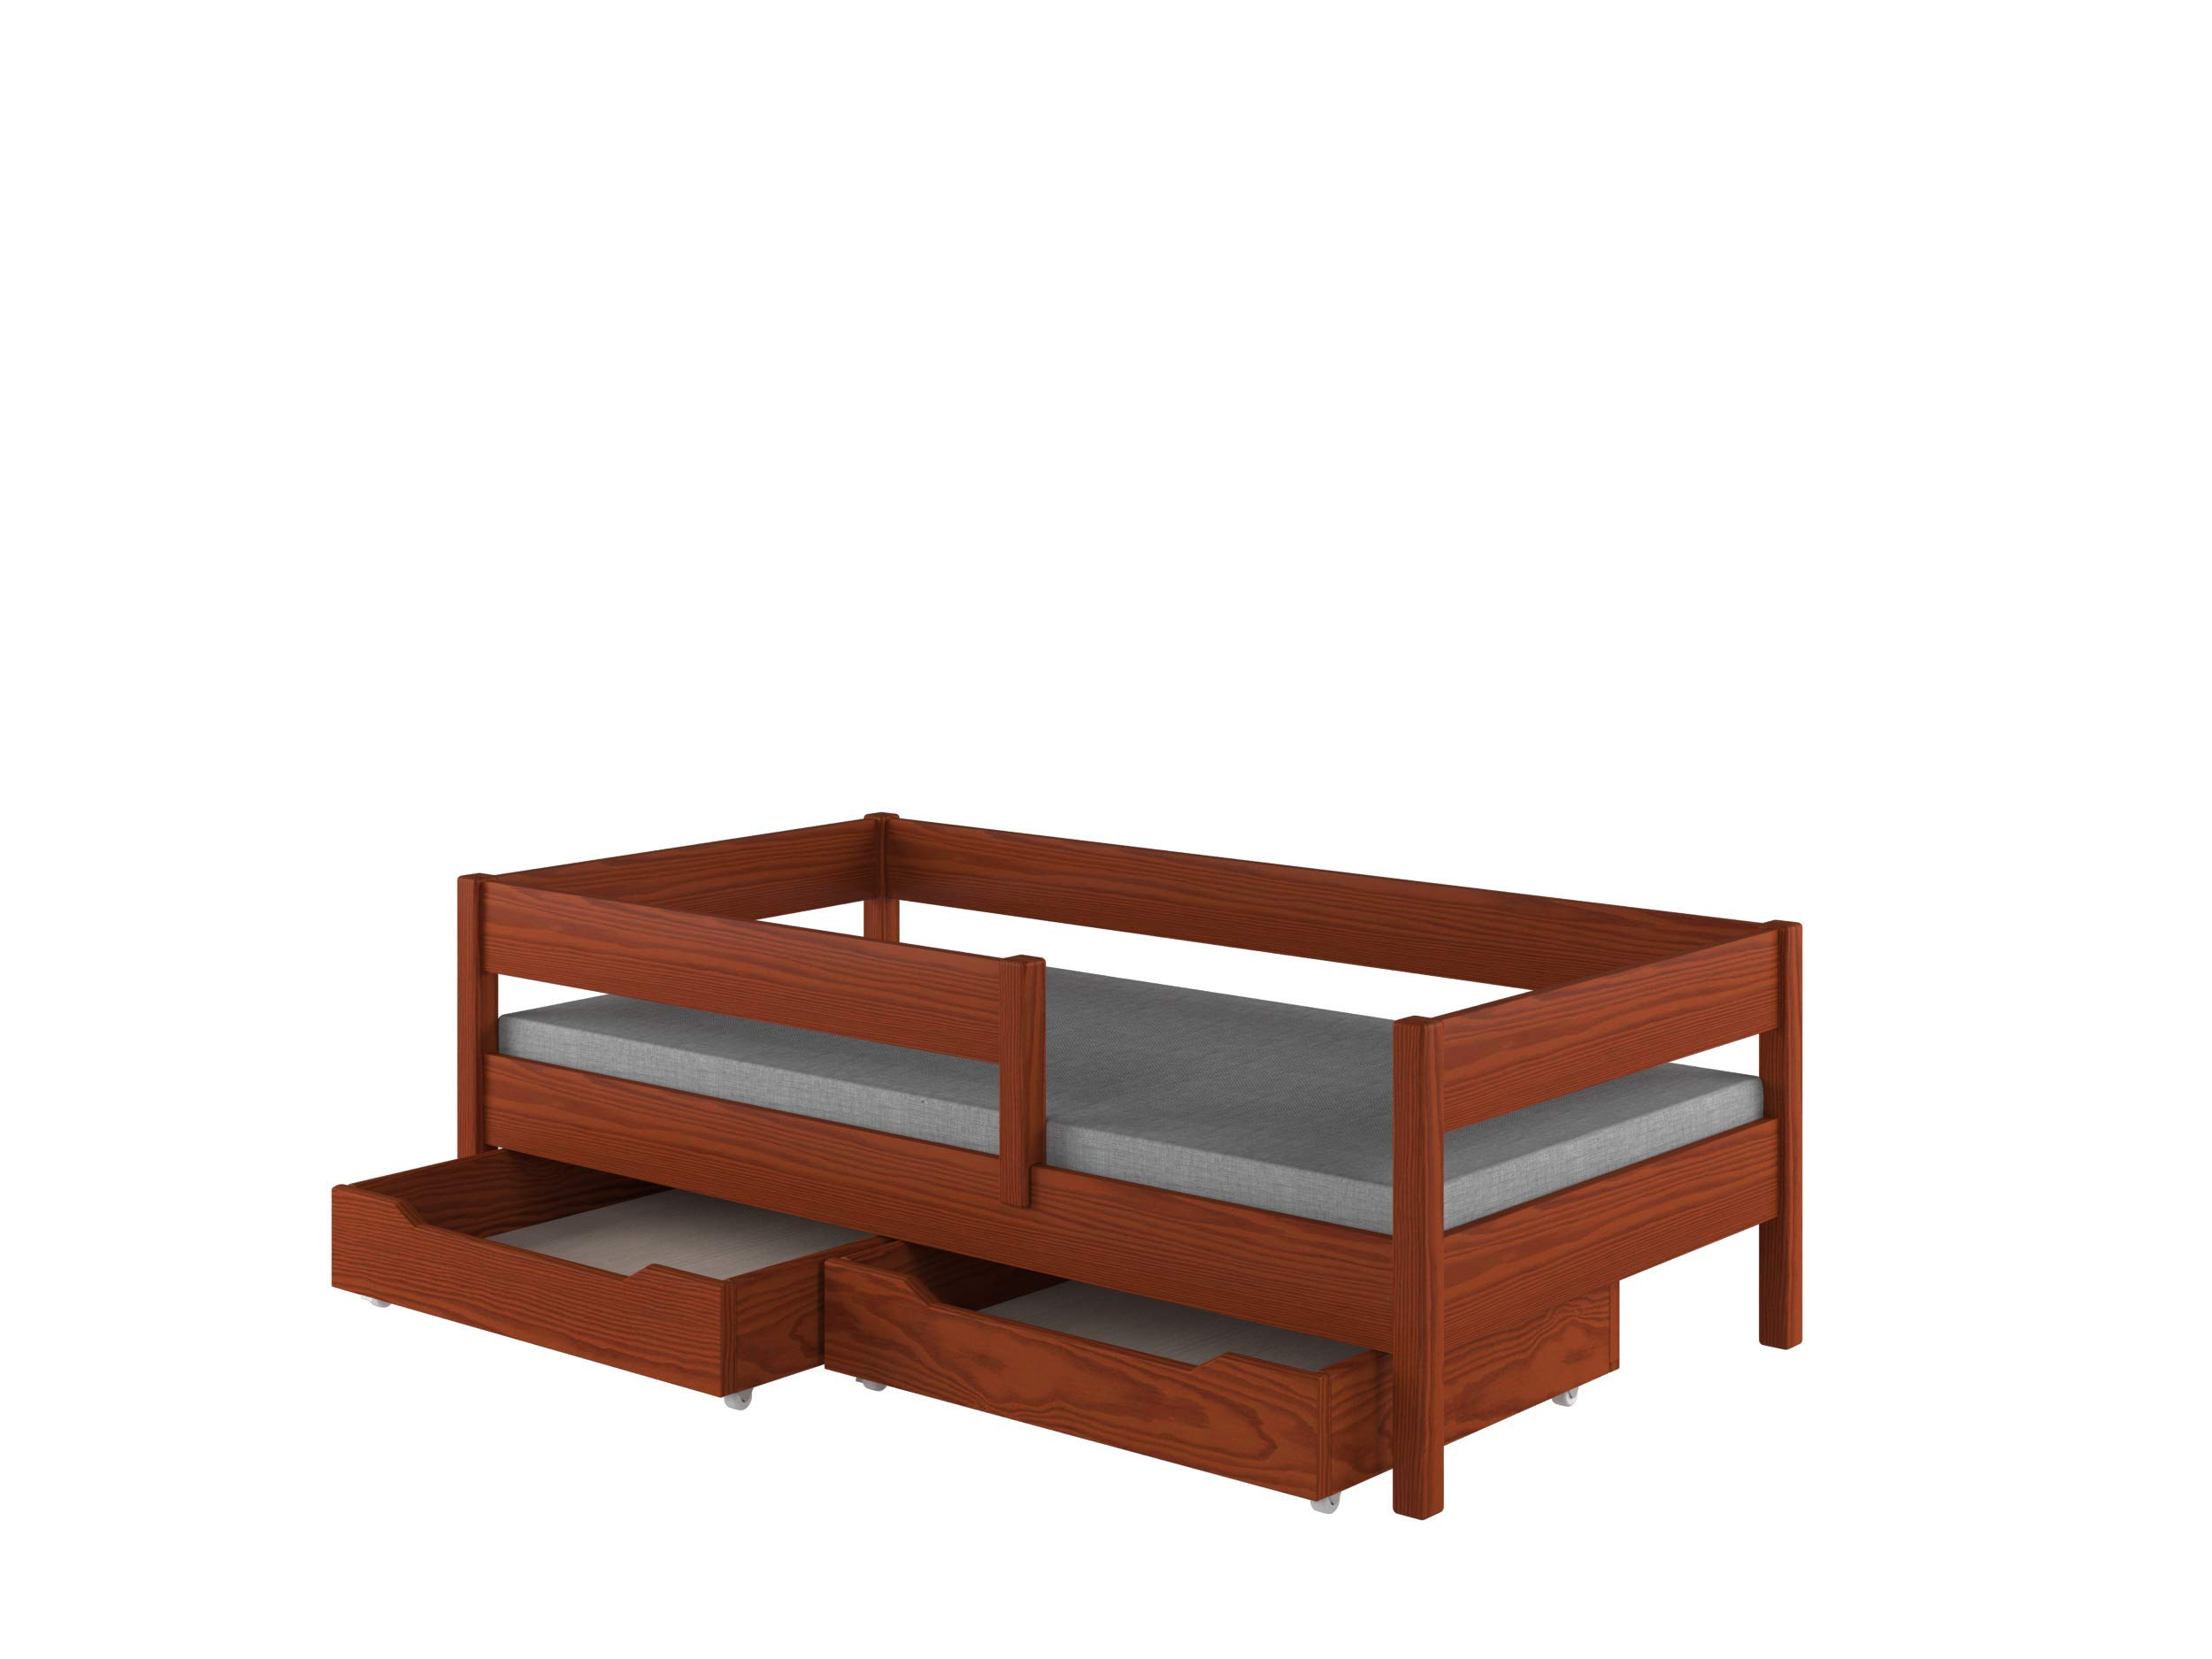 Children's Beds Home Single Beds For Kids Children Toddler Junior with drawers No Mattress Included...(140x70, Palisander) Children's Beds Home Bed with barriers - internal dimensions 140x70, 160x80, 180x80, 180x90, 200x90 (External dimensions: 147x77, 167x87, 187x87, 187x97, 207x97) Bed frame with load capacity of 150 kg, Fittings + installation instructions Universal bed entrance - right or left side, front barrier can be removed at later stage. 1